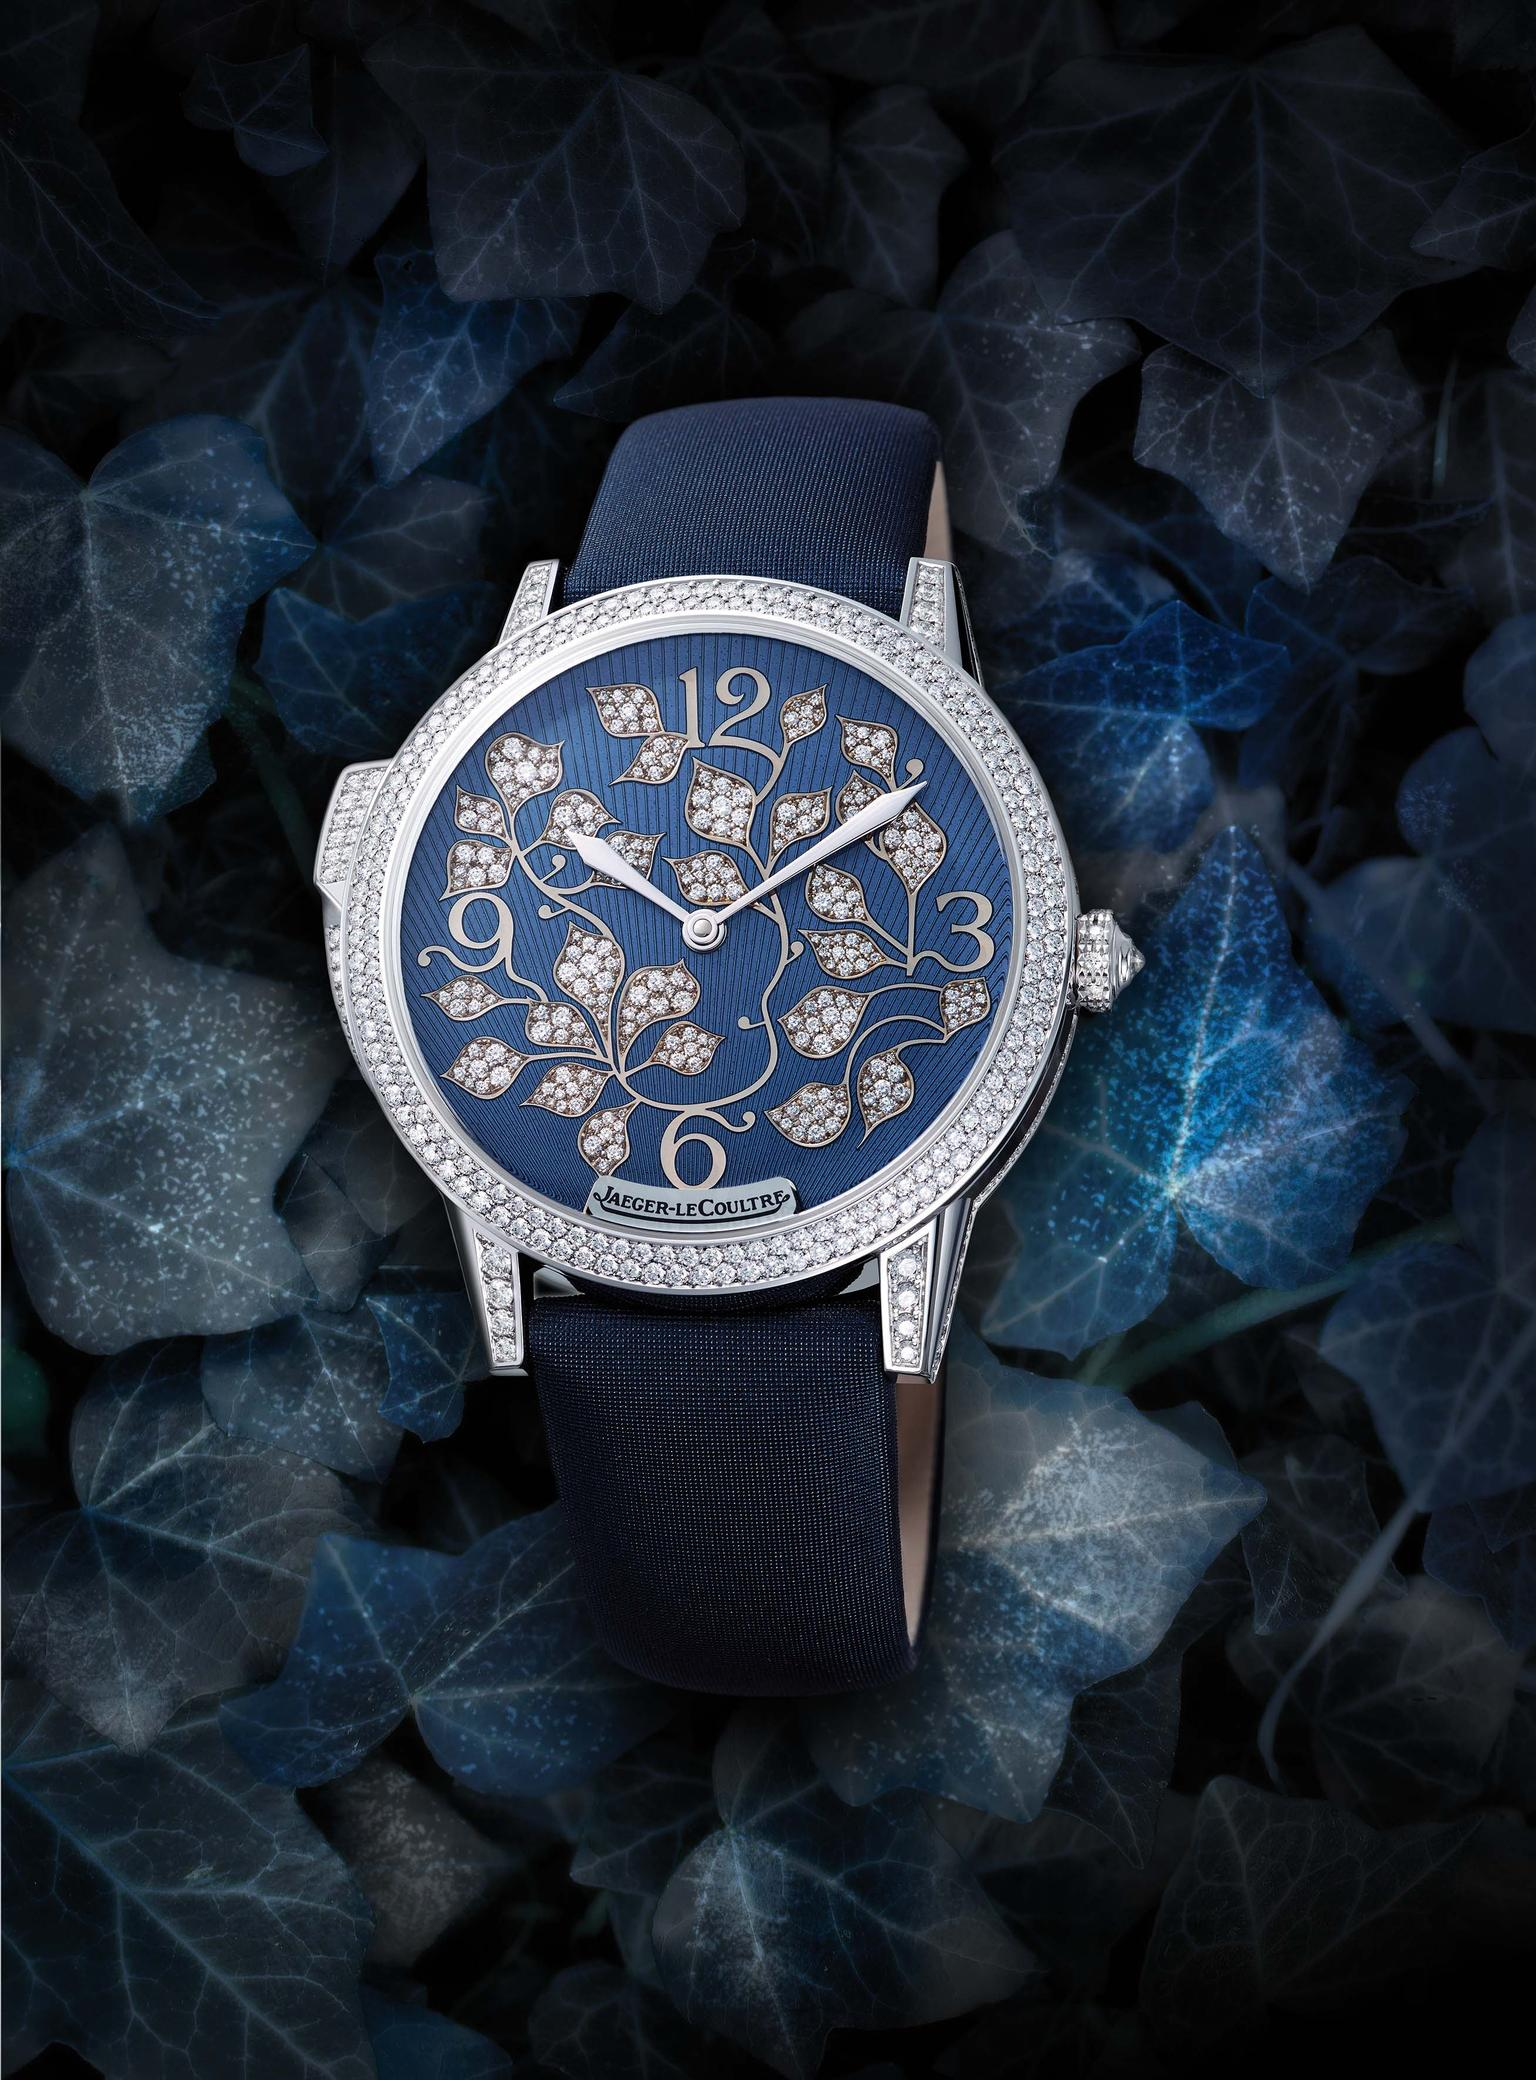 The new Jaeger-LeCoultre Rendez-Vous Ivy Minute Repeater watch for women mmediately seduces the eye with its snow-set diamond ivy leaves that swirl across the deep blue enamel dial, which is decorated with a sunburst guilloché motif.